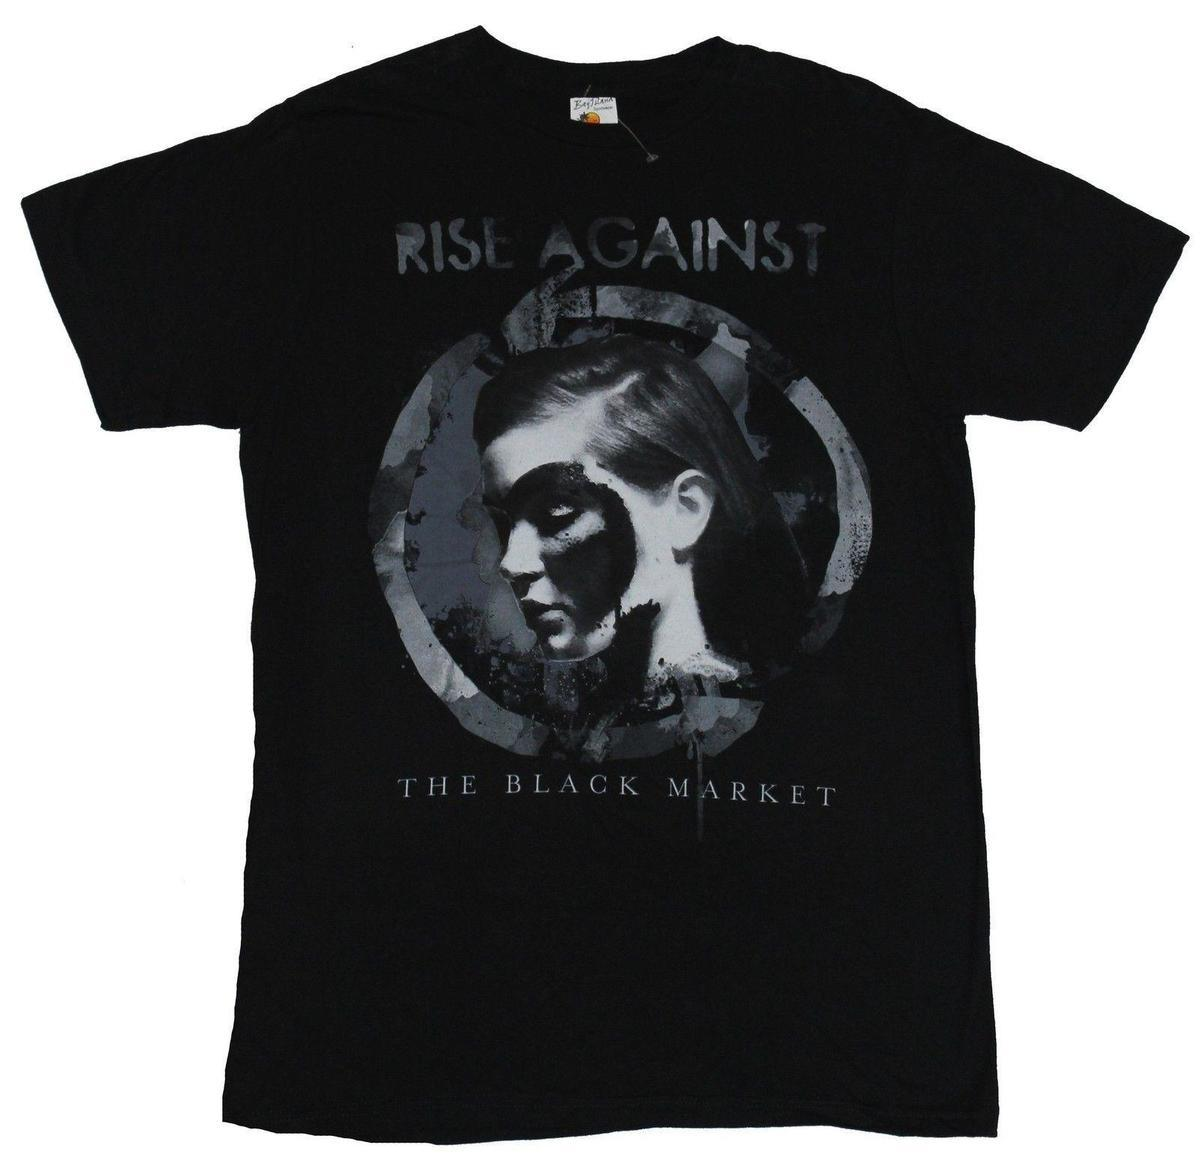 Grosshandel Rise Against Herren T Shirt Der Schwarzmarkt Circled